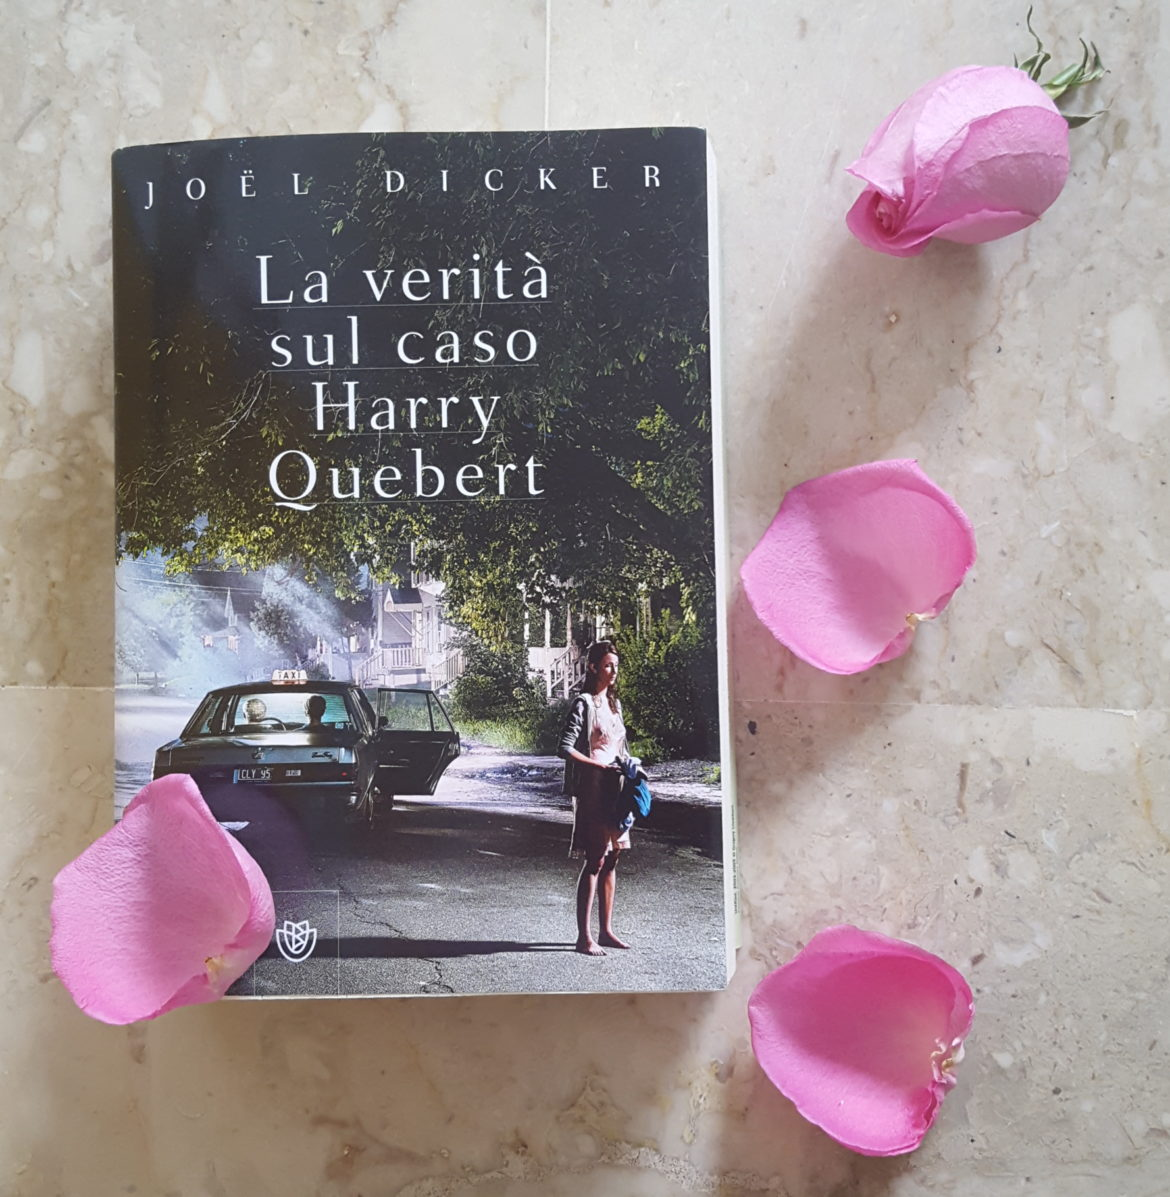 la verità sul caso Harry Quebert joel dicker